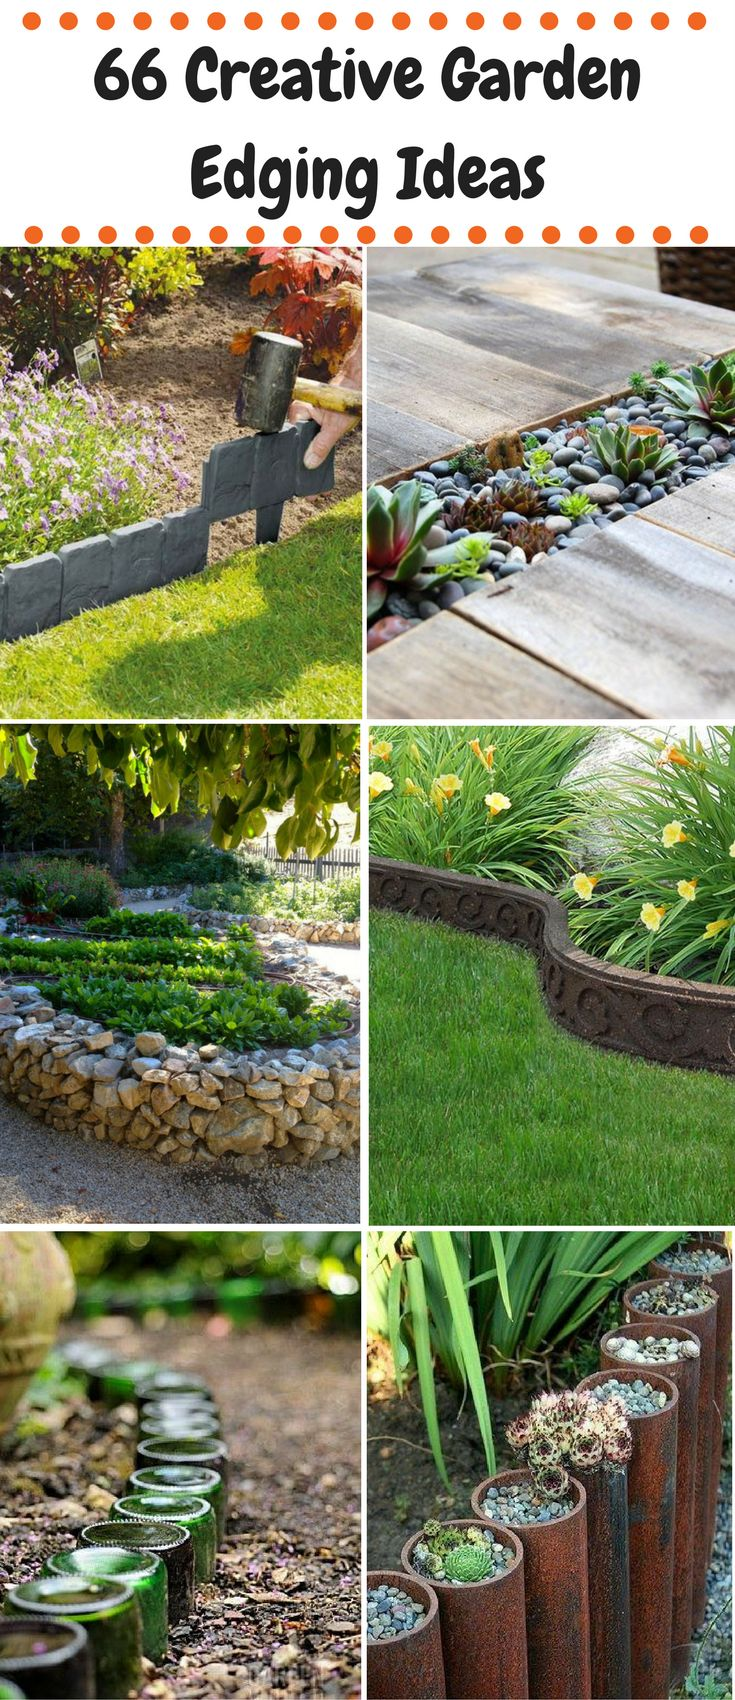 Garden Ideas Pinterest fresh and beautiful backyard landscaping ideas 33 66 Creative Garden Edging Ideas